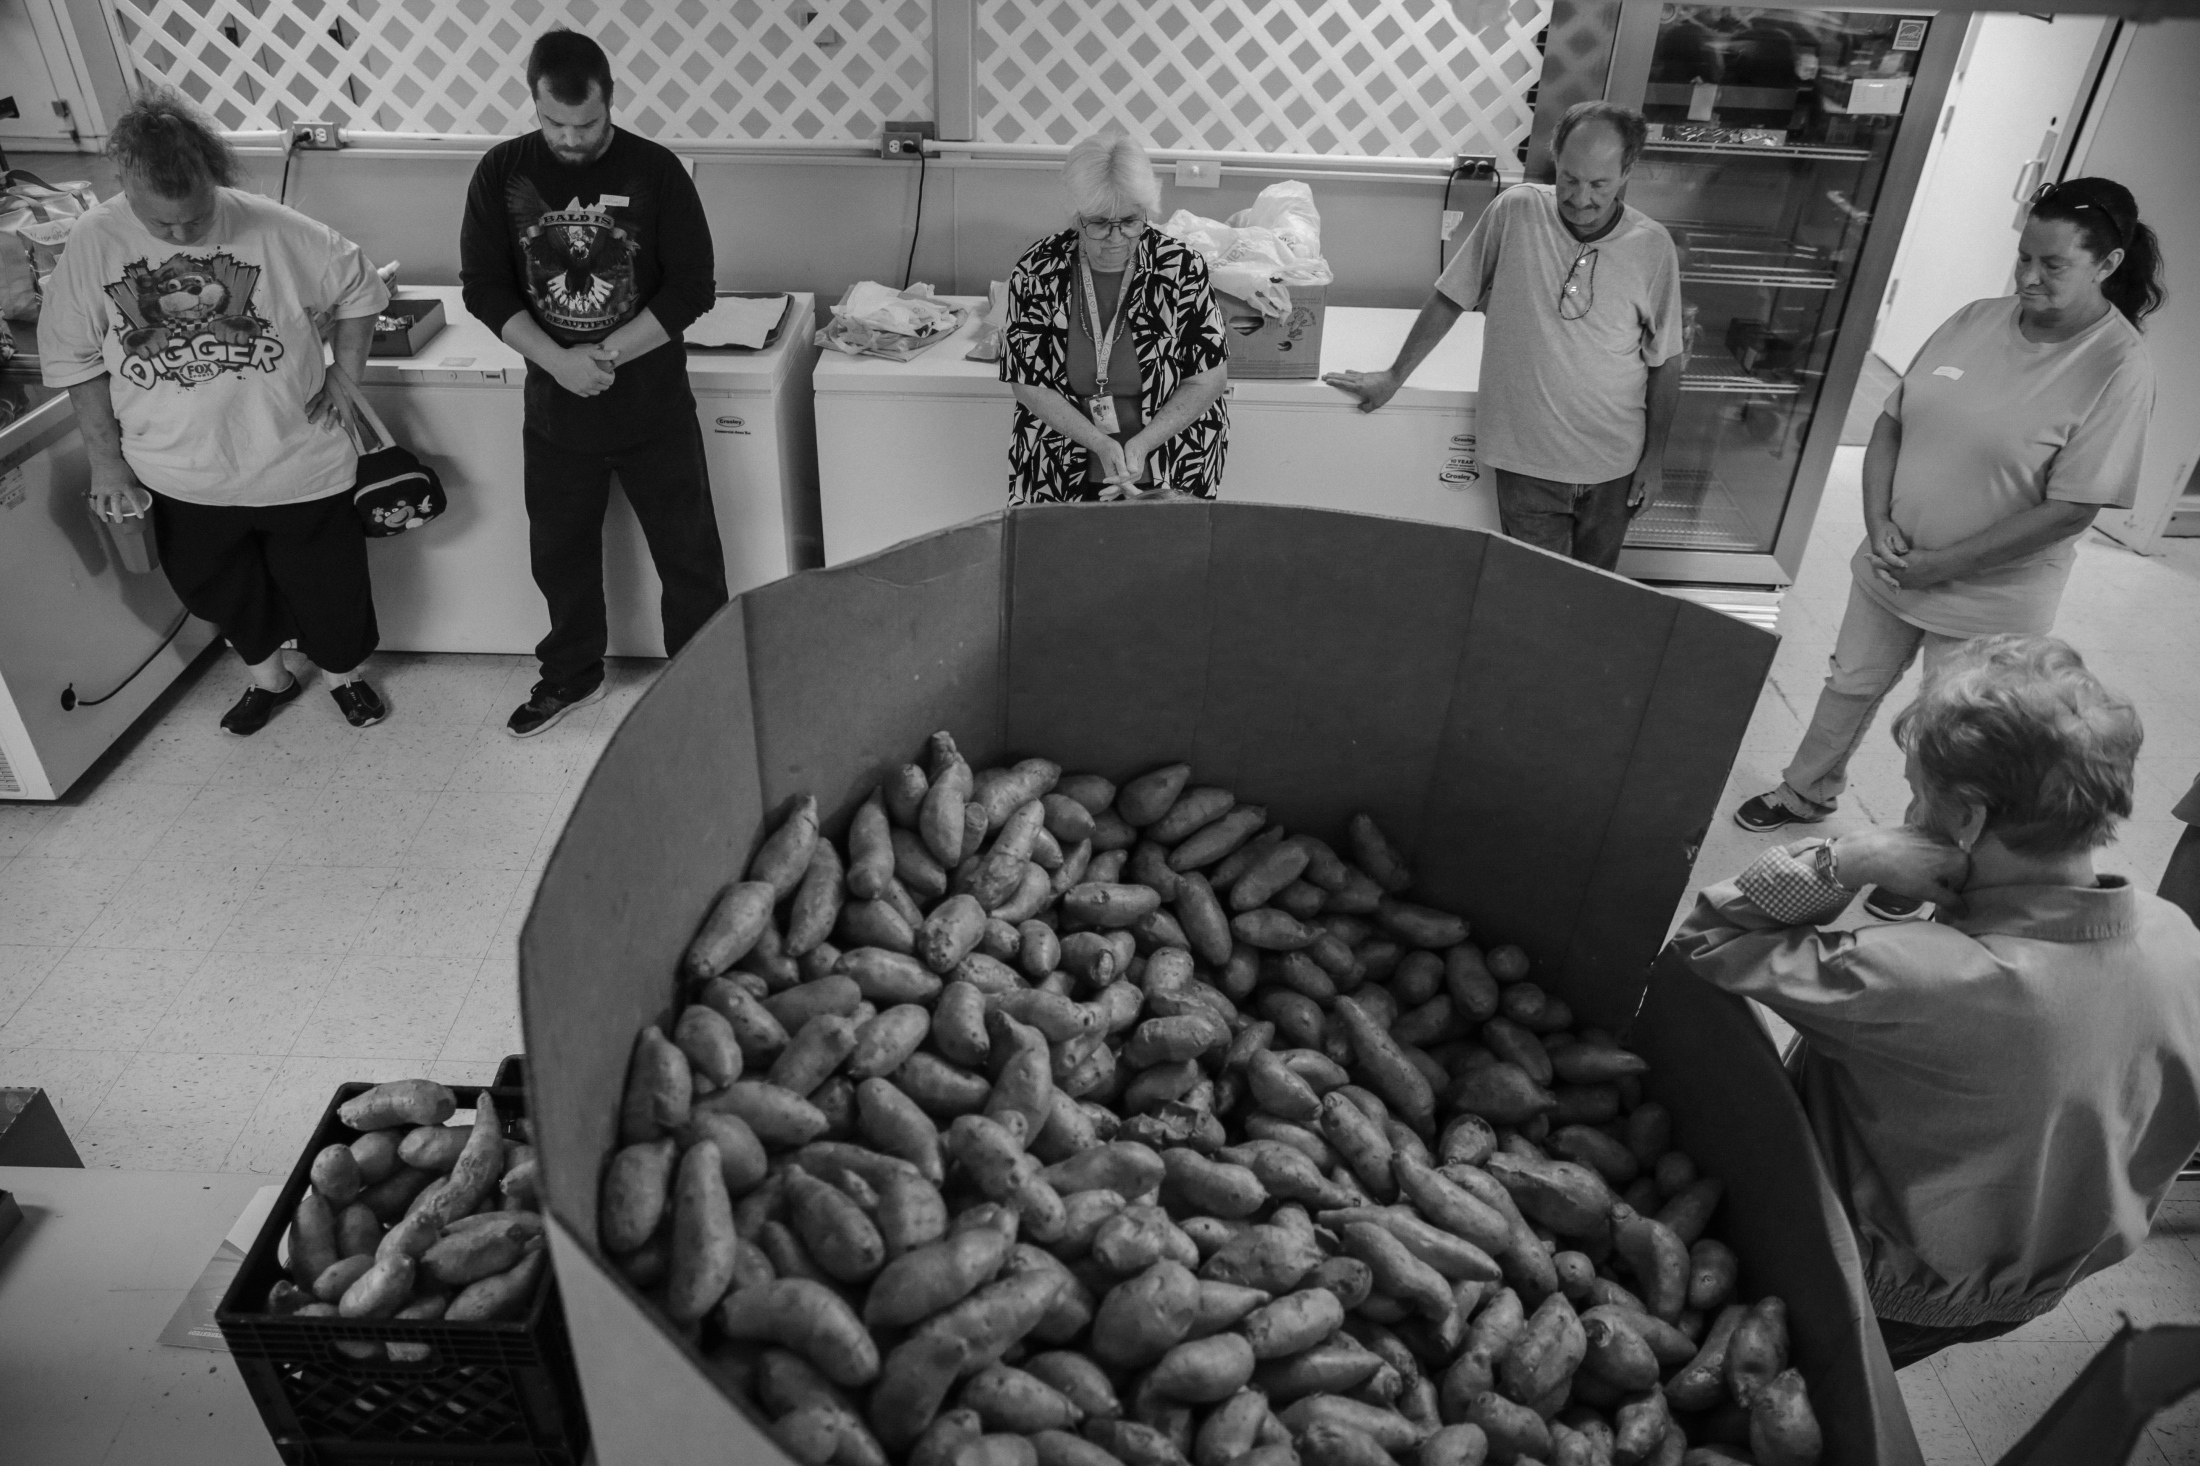 Volunteers listen as Barbara Jopling, the director of Cuba Ministerial Food Pantry, prays near a stack of sweet potatoes to start the day. About a year ago, Anthony was charged with possessing a sawed-off shotgun and has volunteered at the pantry to fulfill his community service hours.